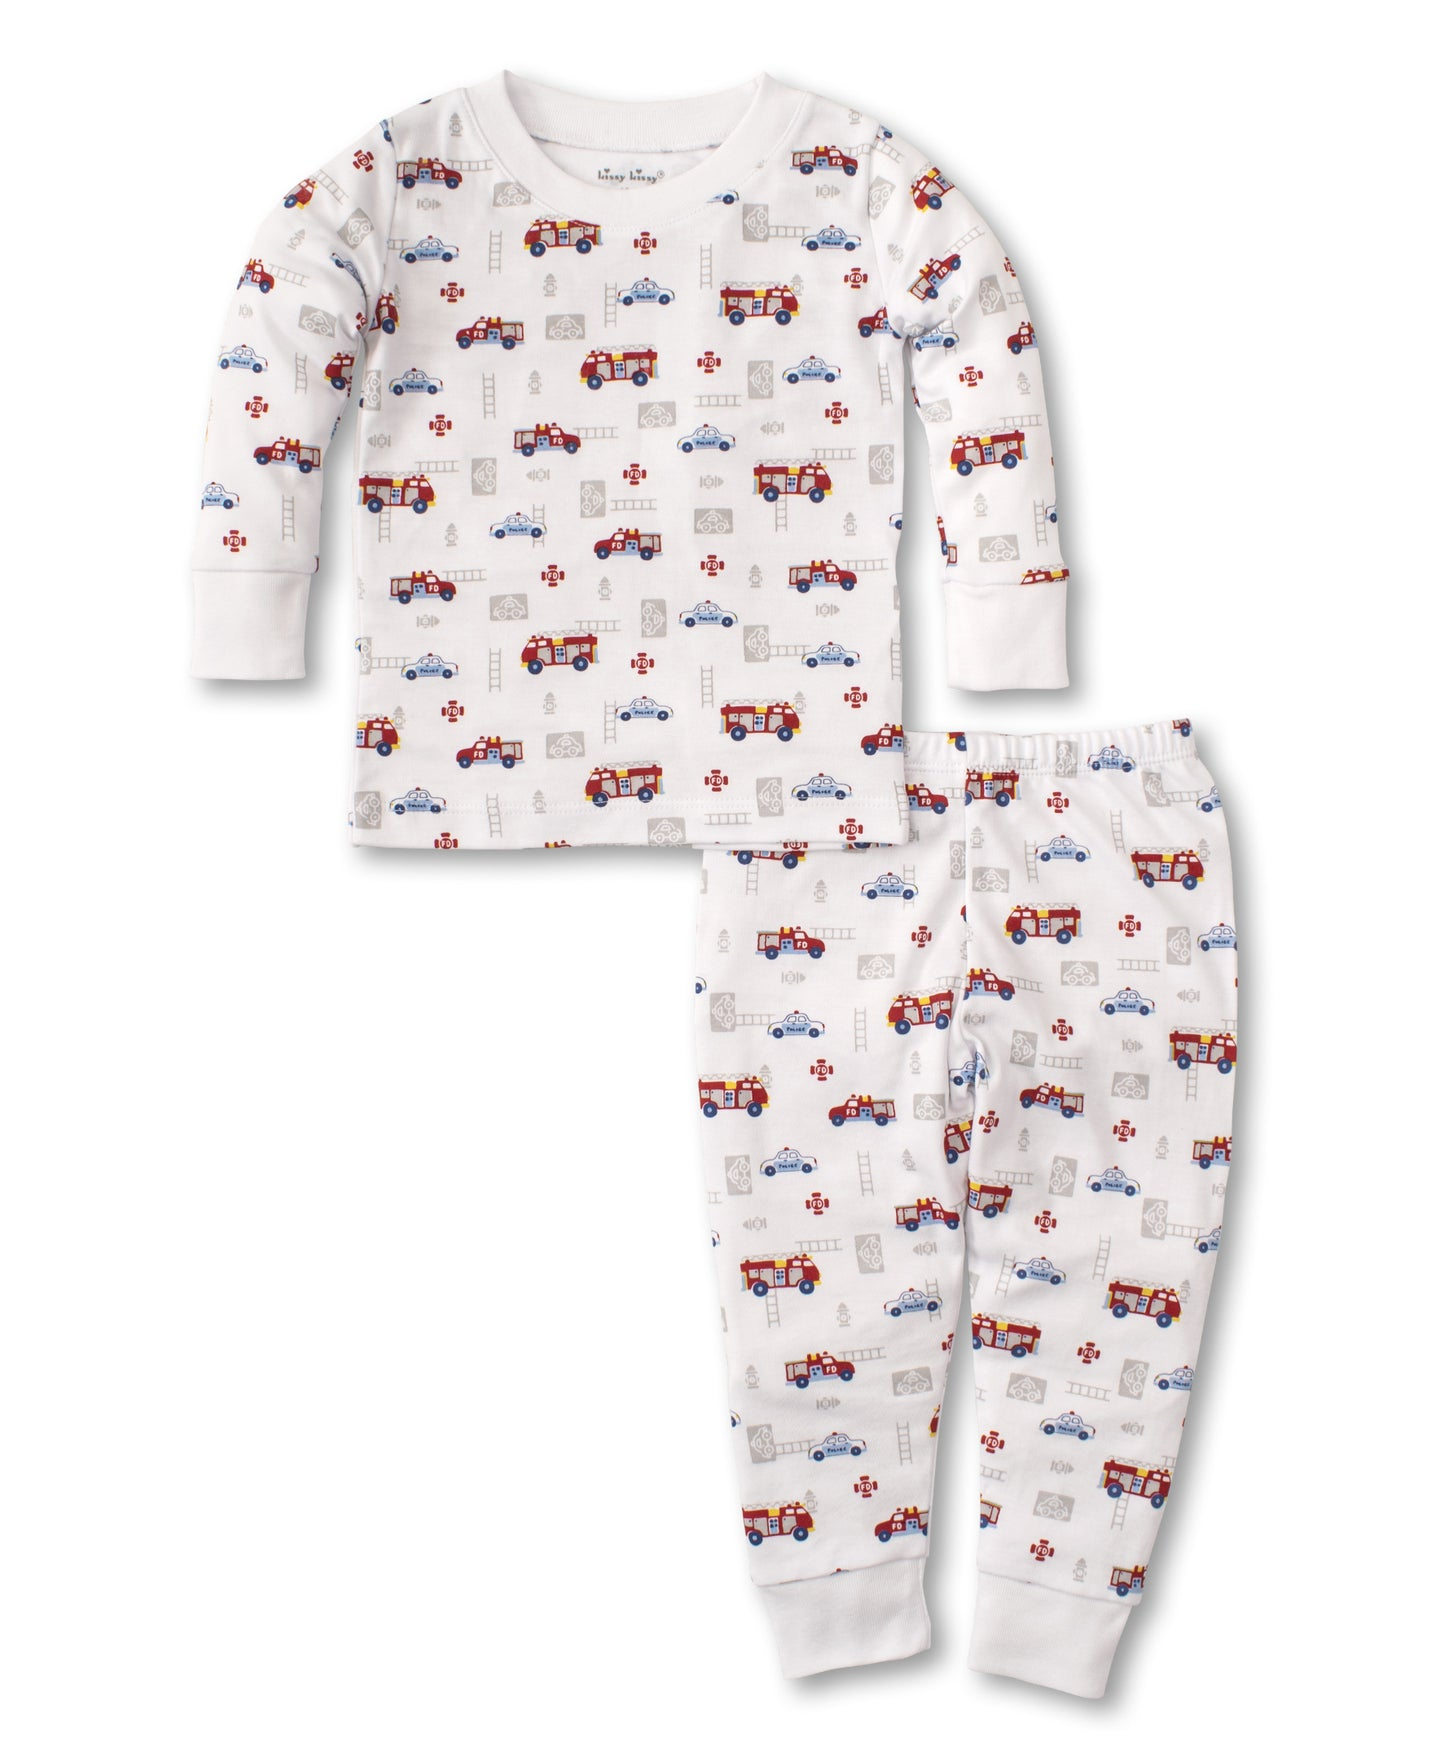 kissy kissy Rescue Team Toddler Pajama Set